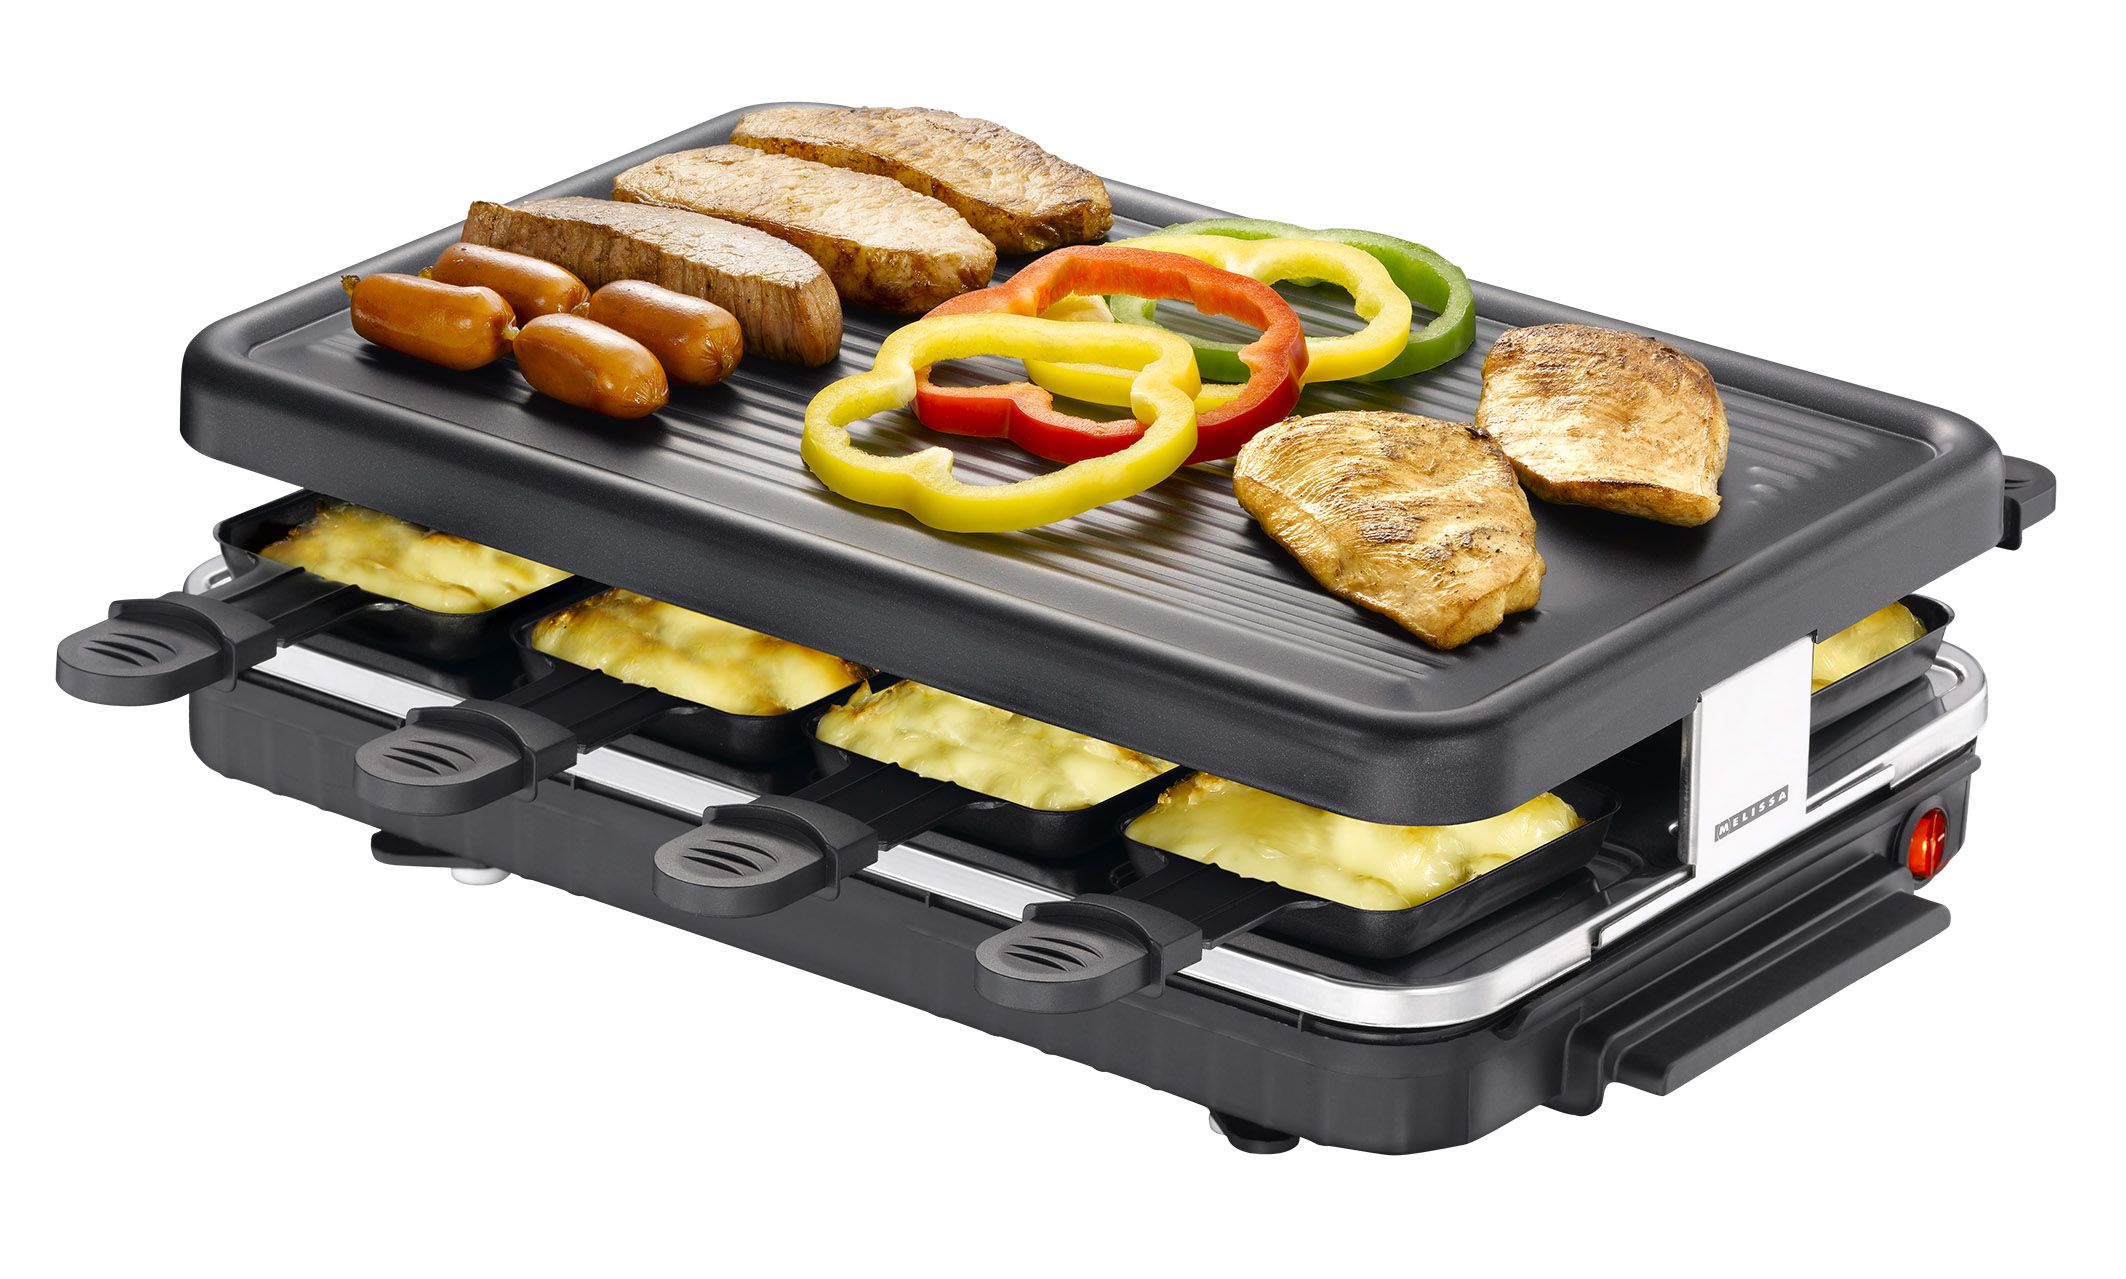 clatronic raclette grill rg 3517 bis zu 8 personen tischgrill elektrogrill ebay. Black Bedroom Furniture Sets. Home Design Ideas